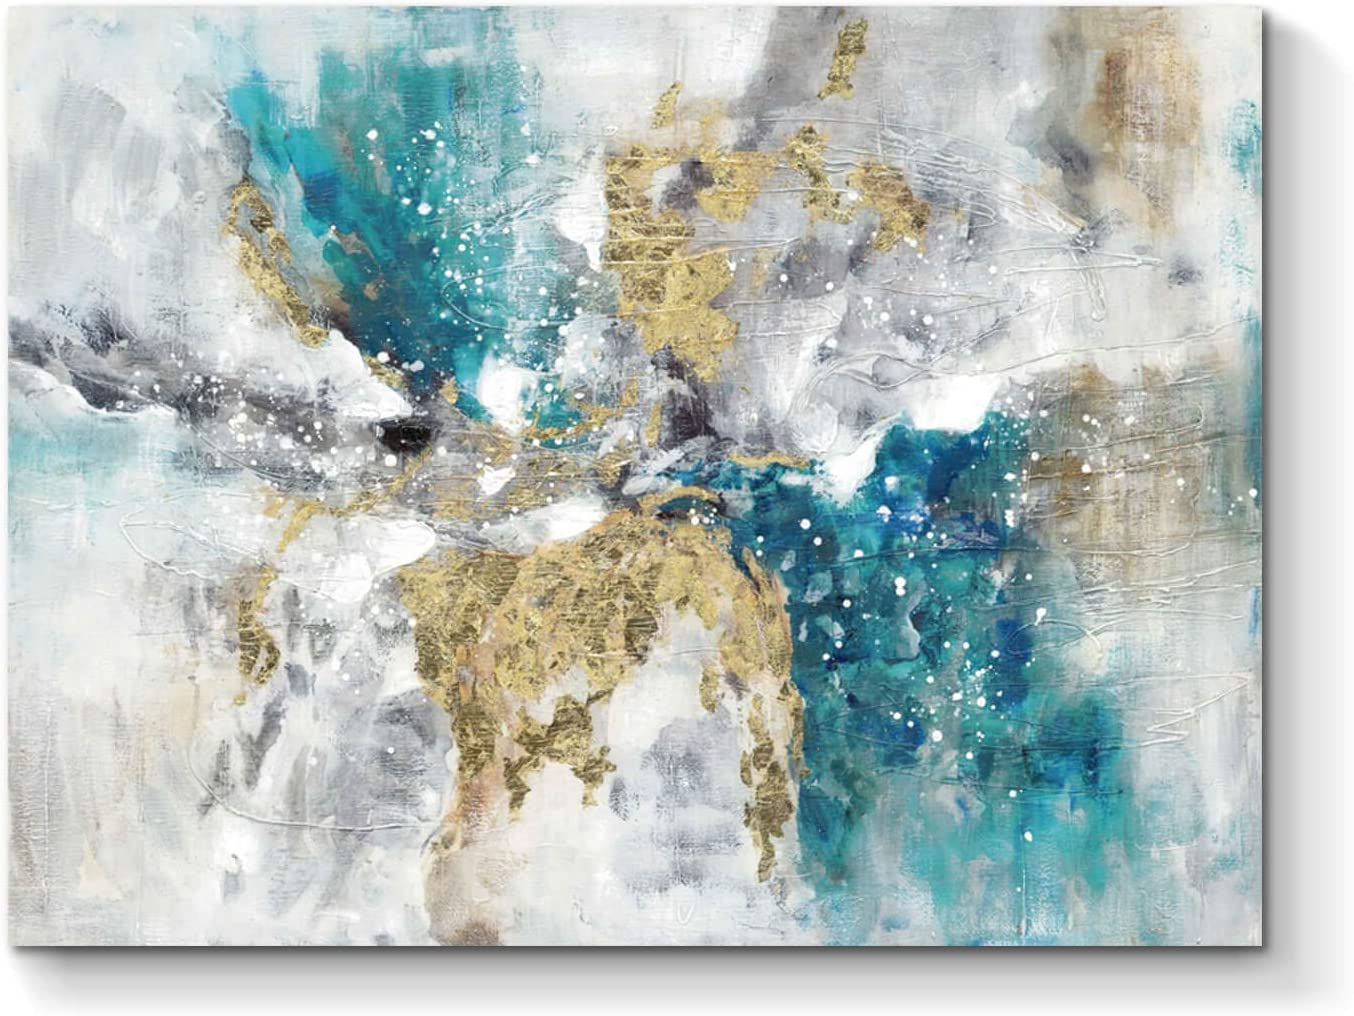 Abstract Wall Art Canvas Artwork: Marble Abstract Heavy Texture Pictures Minimalist Painting with Gold Foil for Bedroom ( 24''W x 18''H, Multiple Sizes )